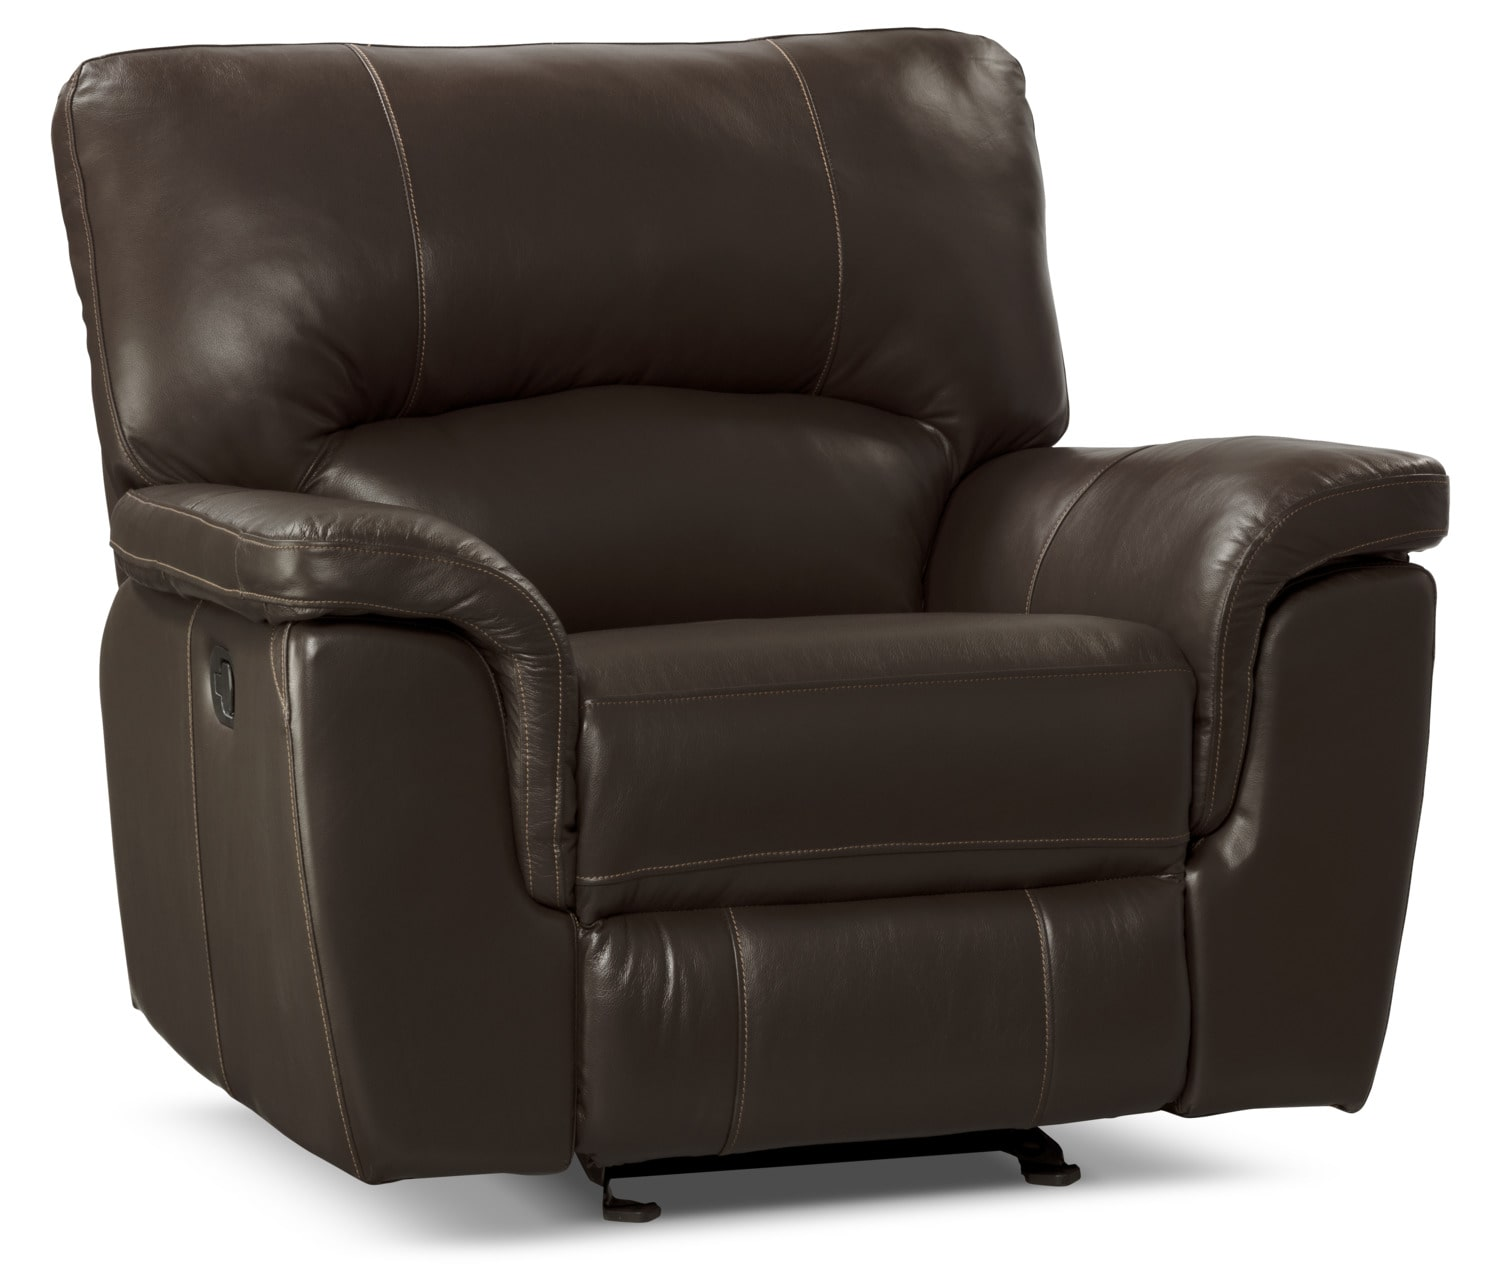 Kendal Genuine Leather Reclining Chair – Brown